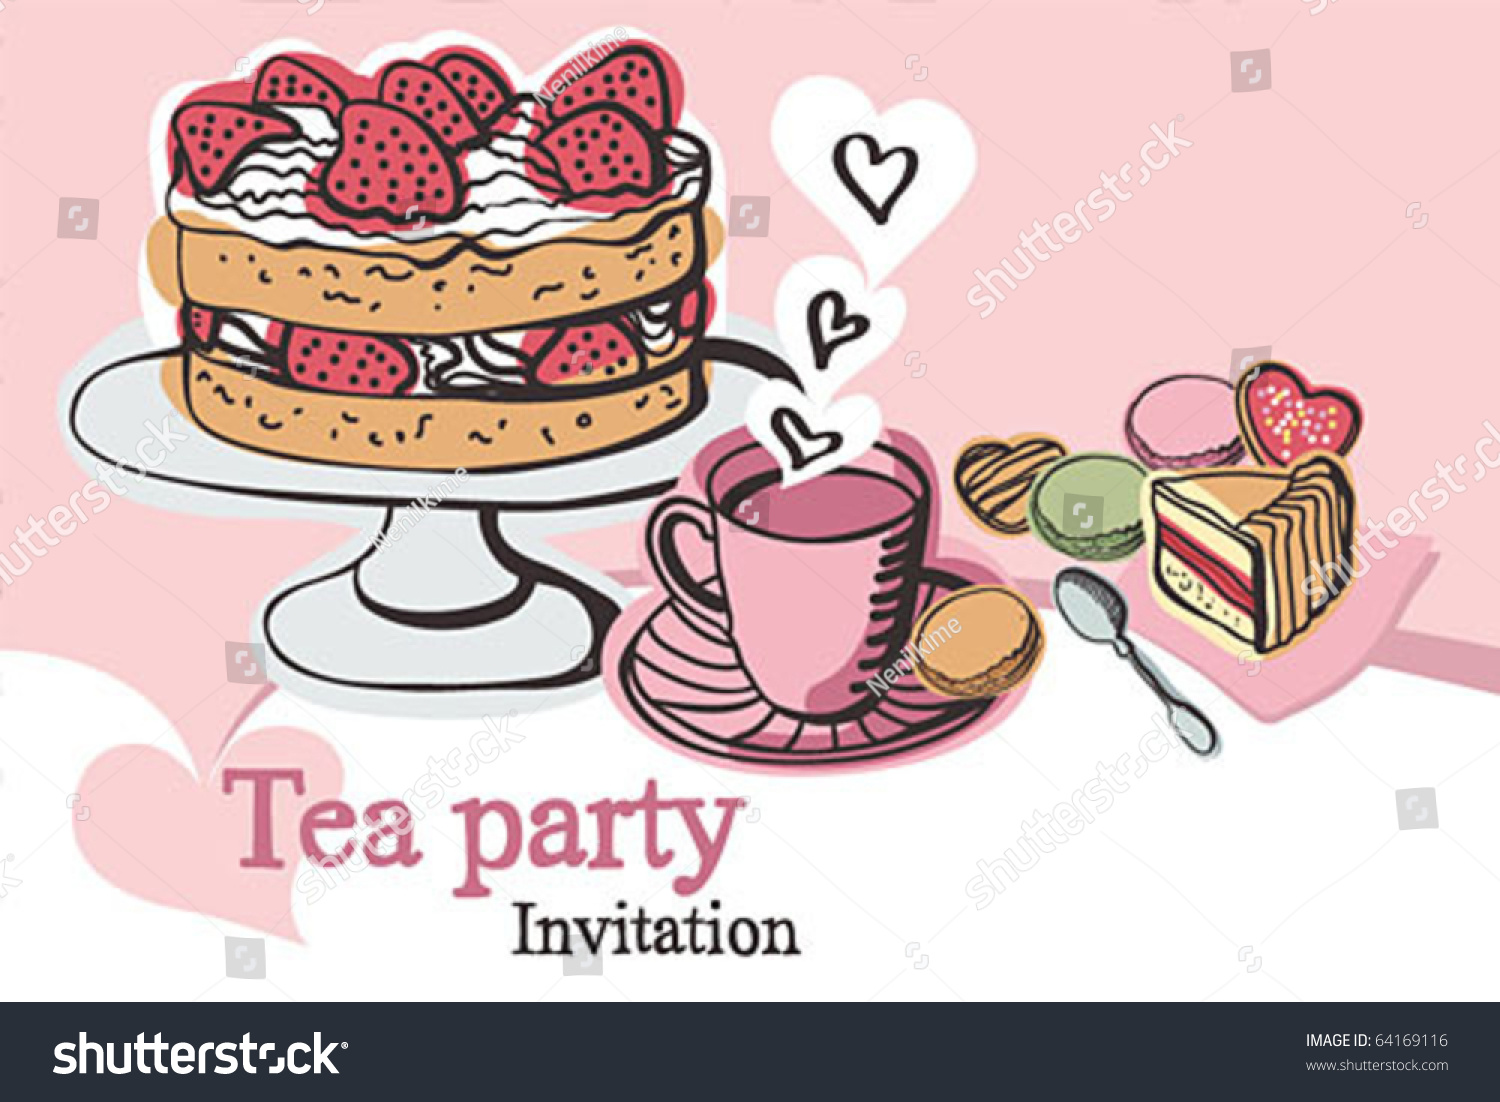 Kitchen Tea Party Invitation Similiar Tea Party Invitation Background Keywords